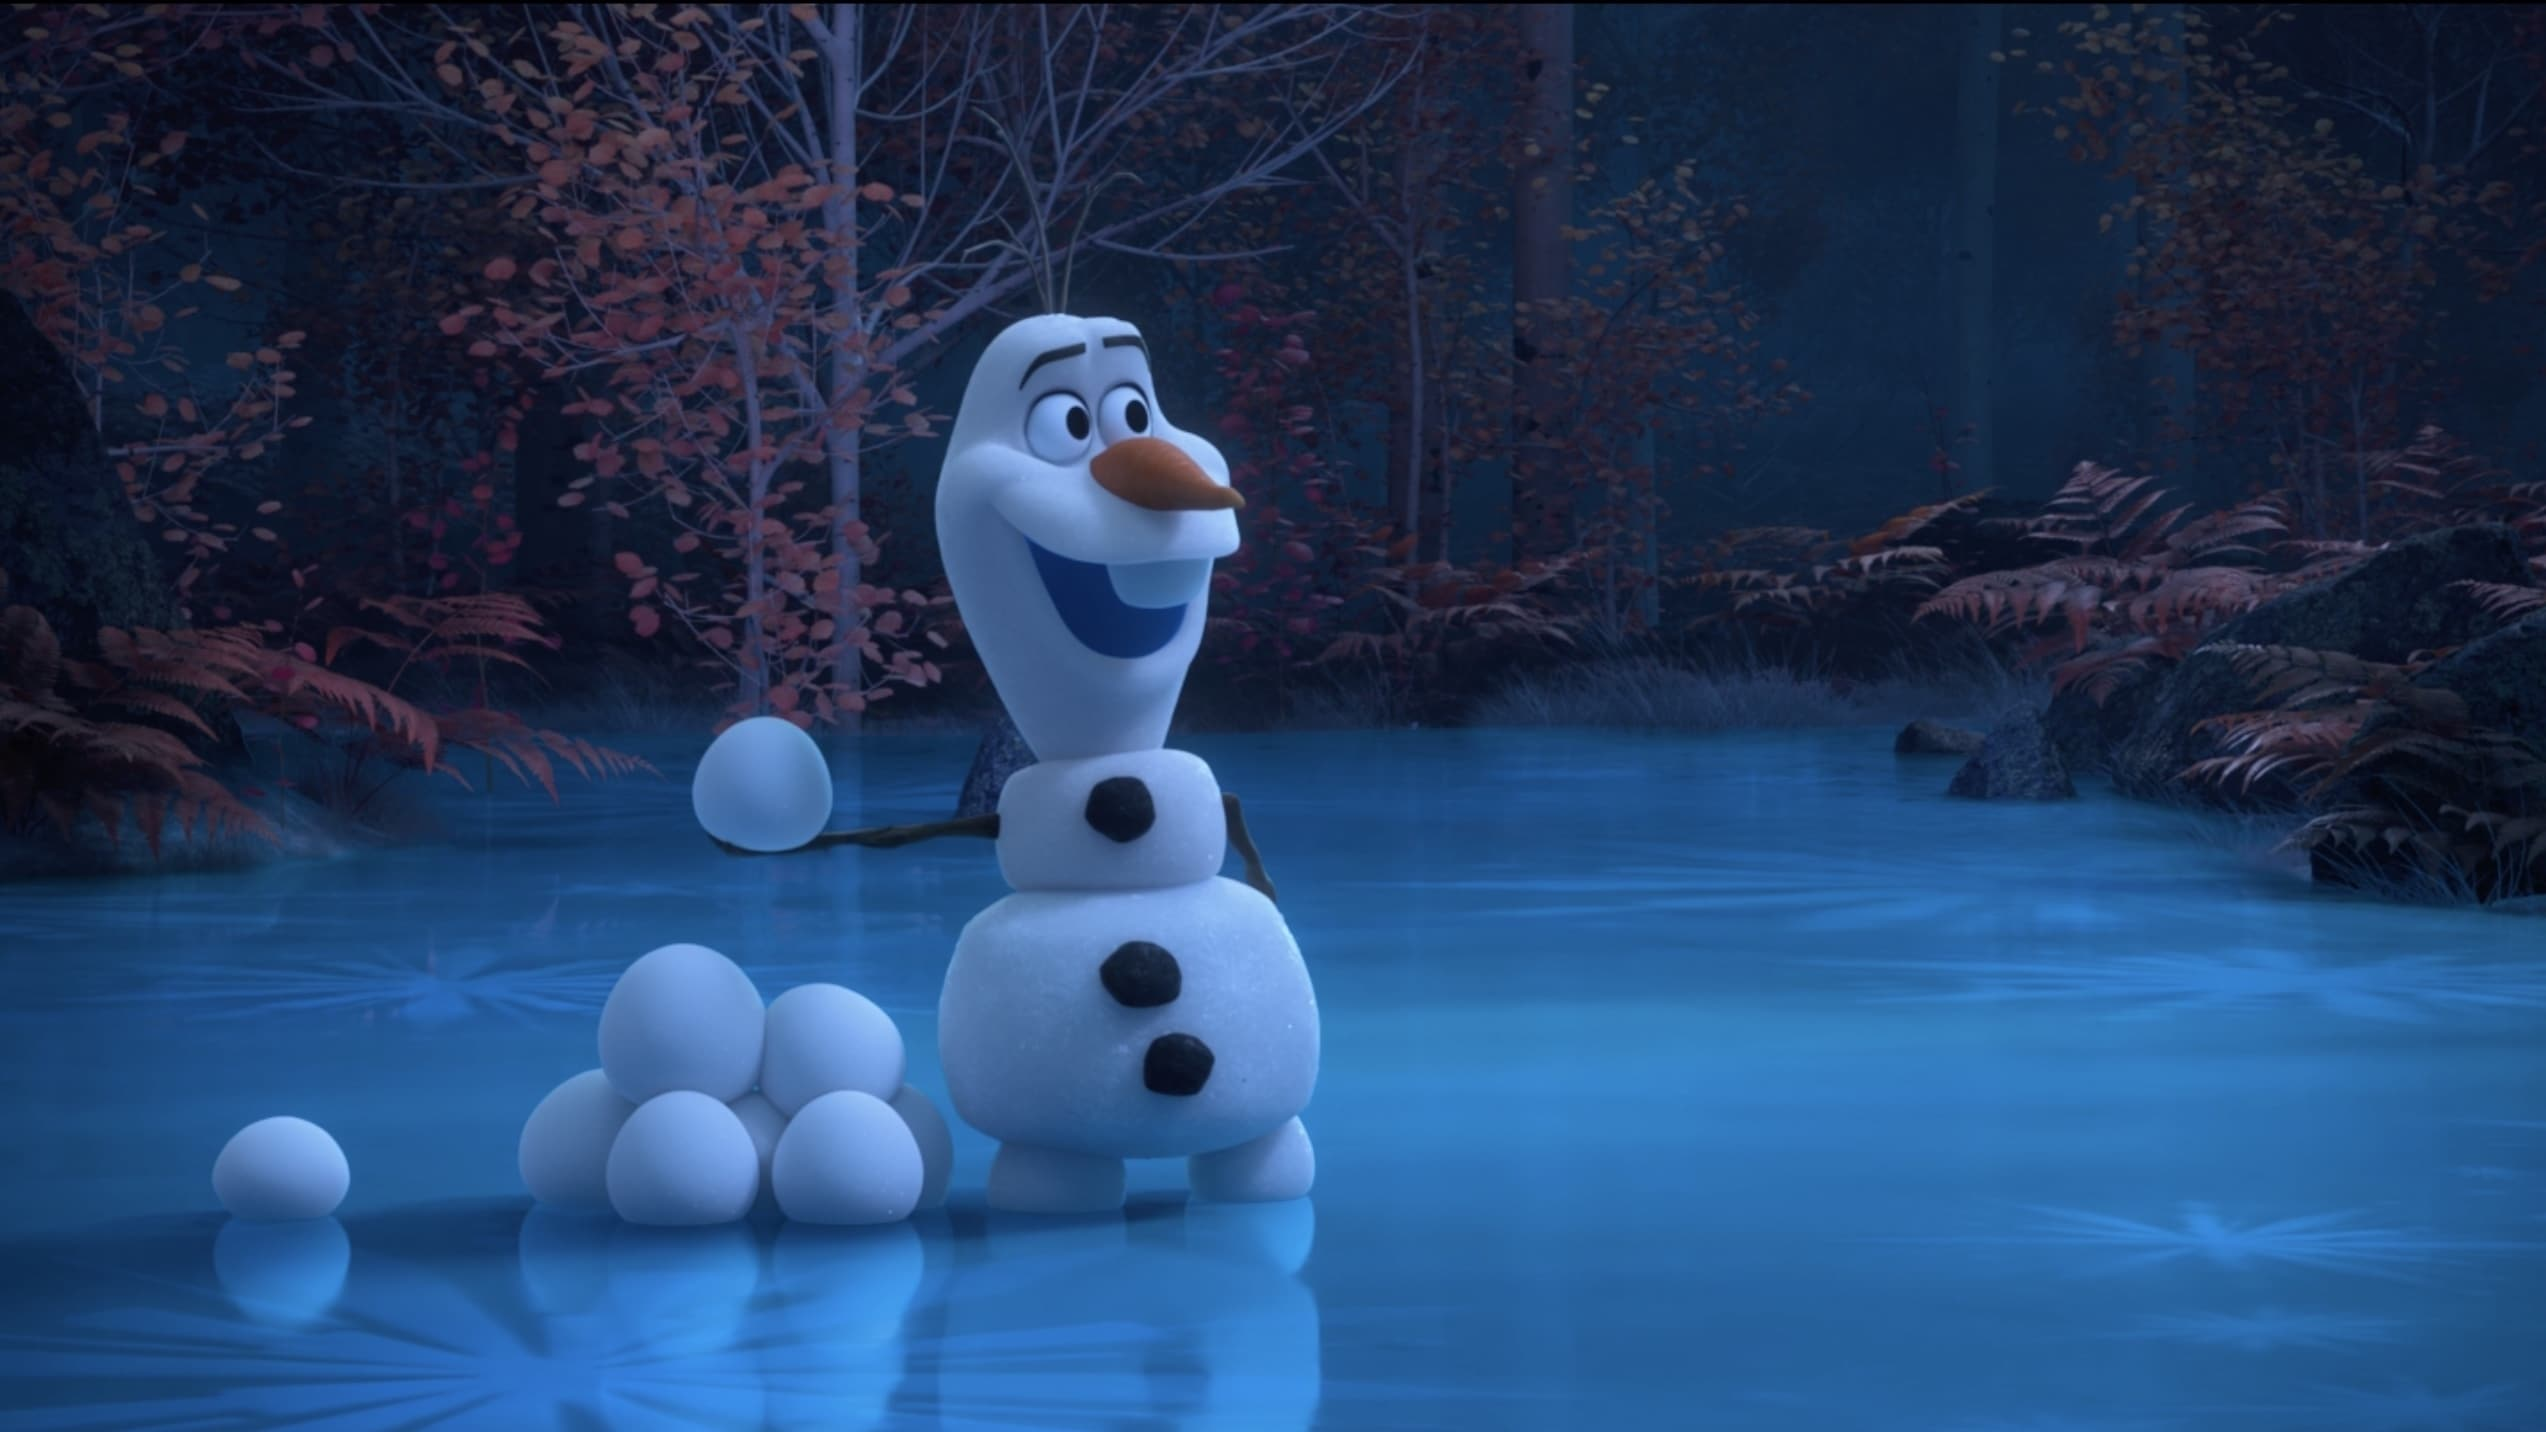 At Home With Olaf New Disney Digital Toon Series With Josh Gad Post Frozen 2 Deadline